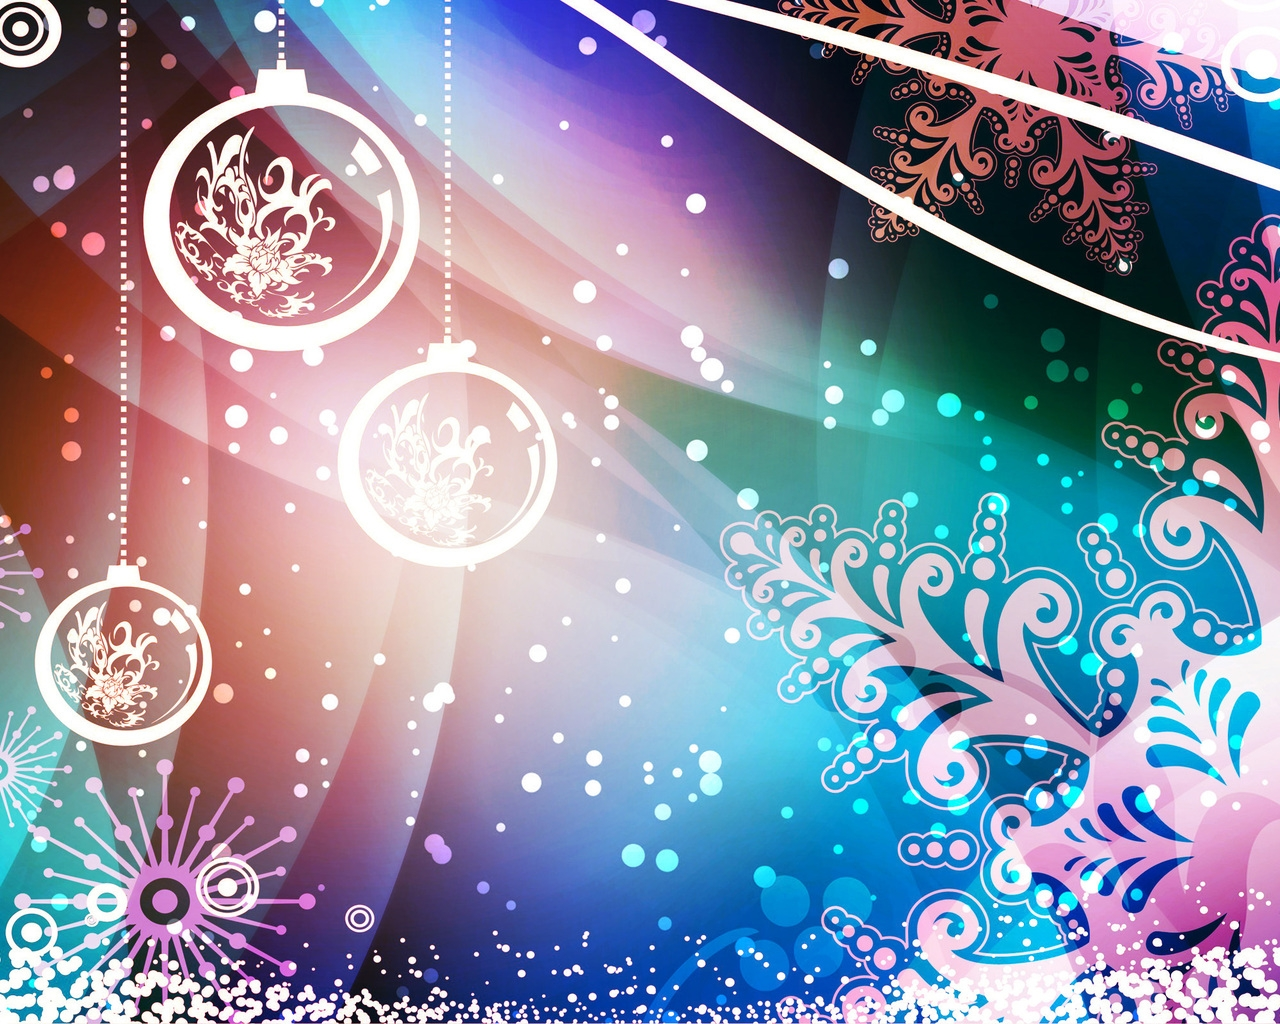 Christmas Greeting card background wallpaper  best christmas